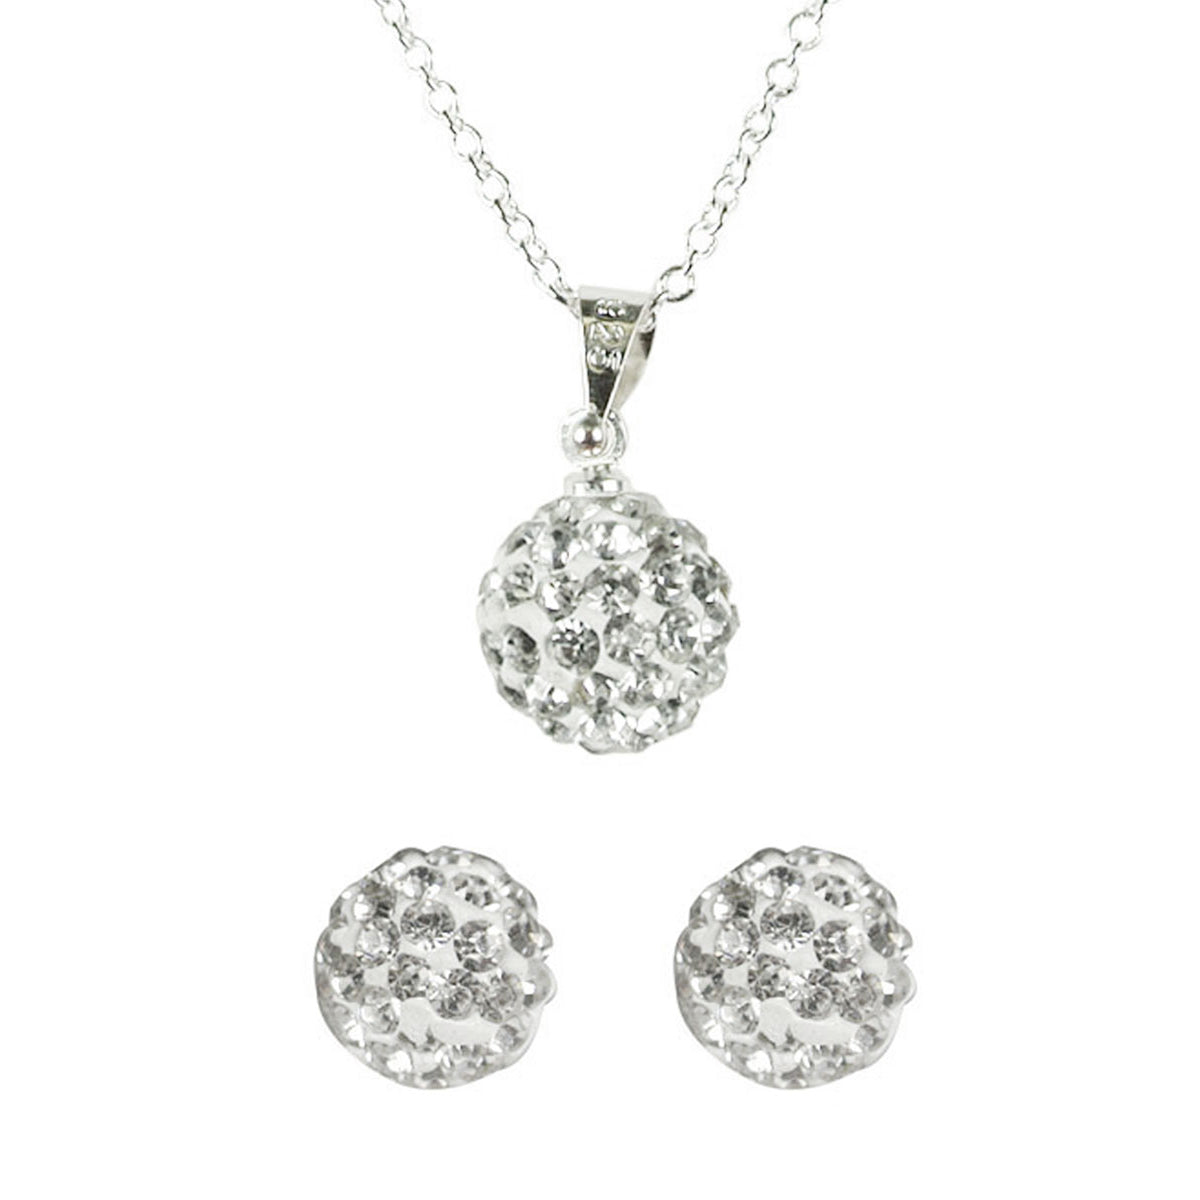 Swarovski Elements Crystal Disco Ball Pendant Necklace and Stud Earrings Jewelry Set, Silver